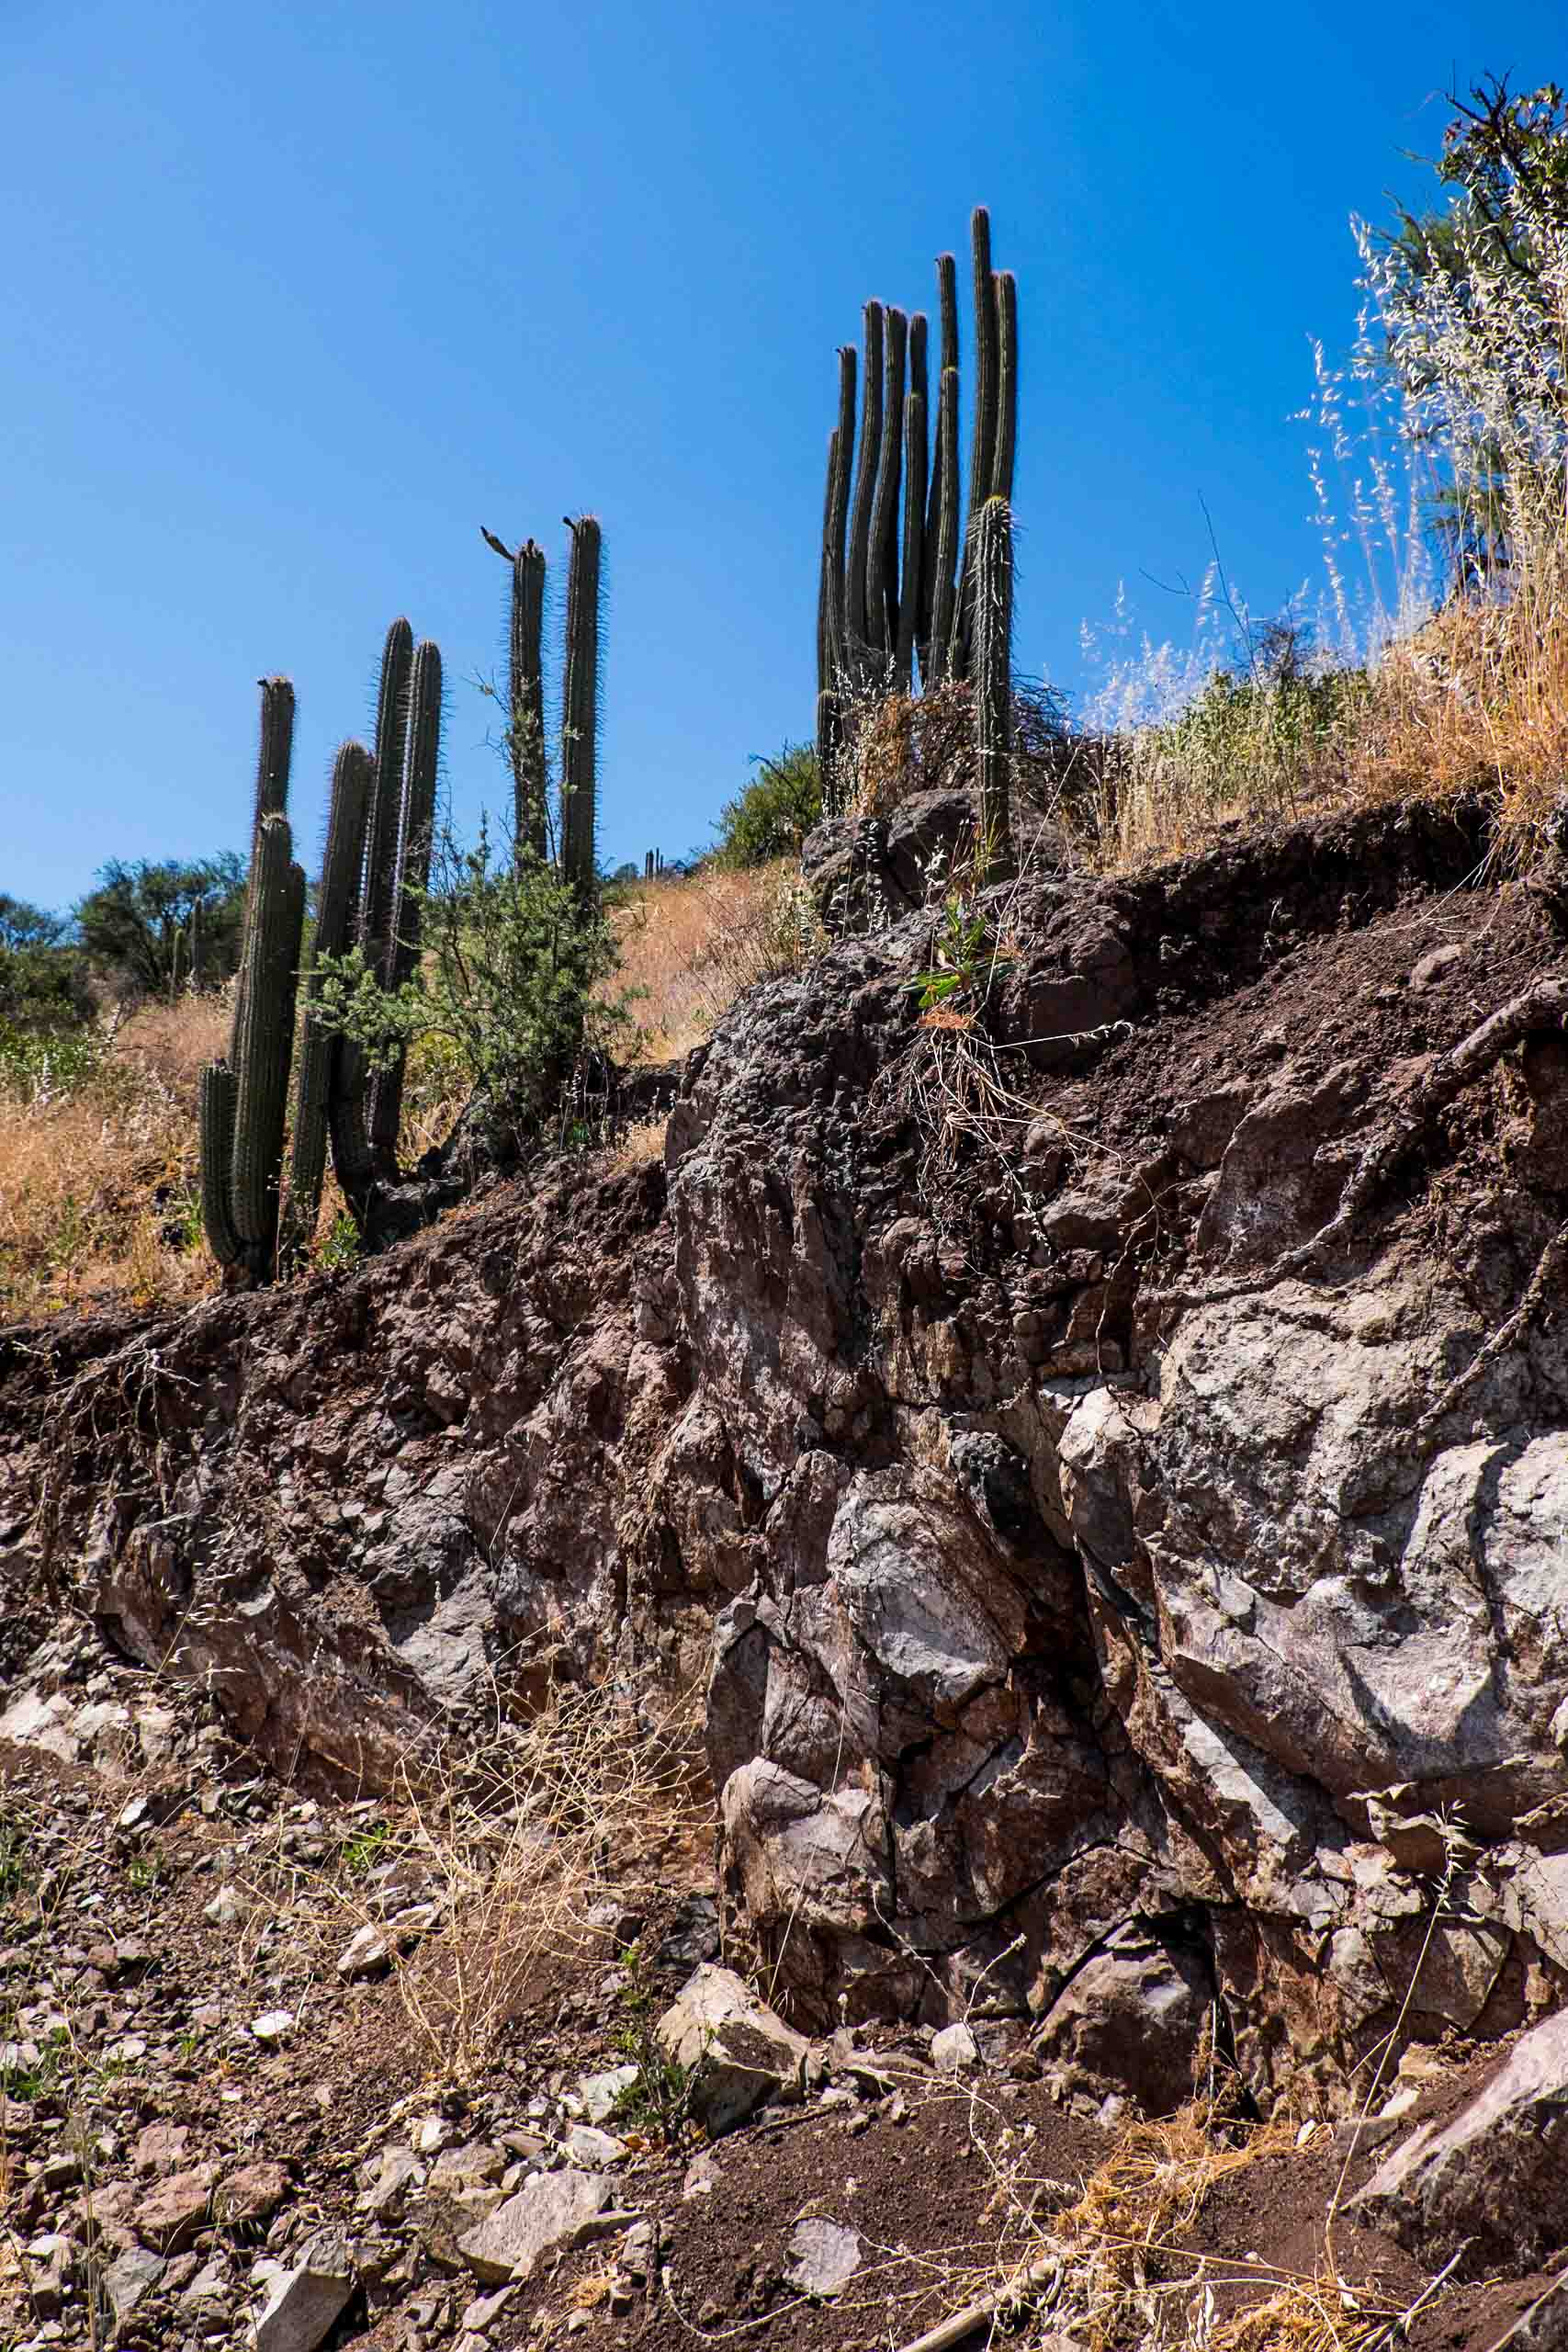 Santa Carolina Piedras Pizzaras vineyard, exposed volcanics |  ©John Szabo (published by Jacqui Small)